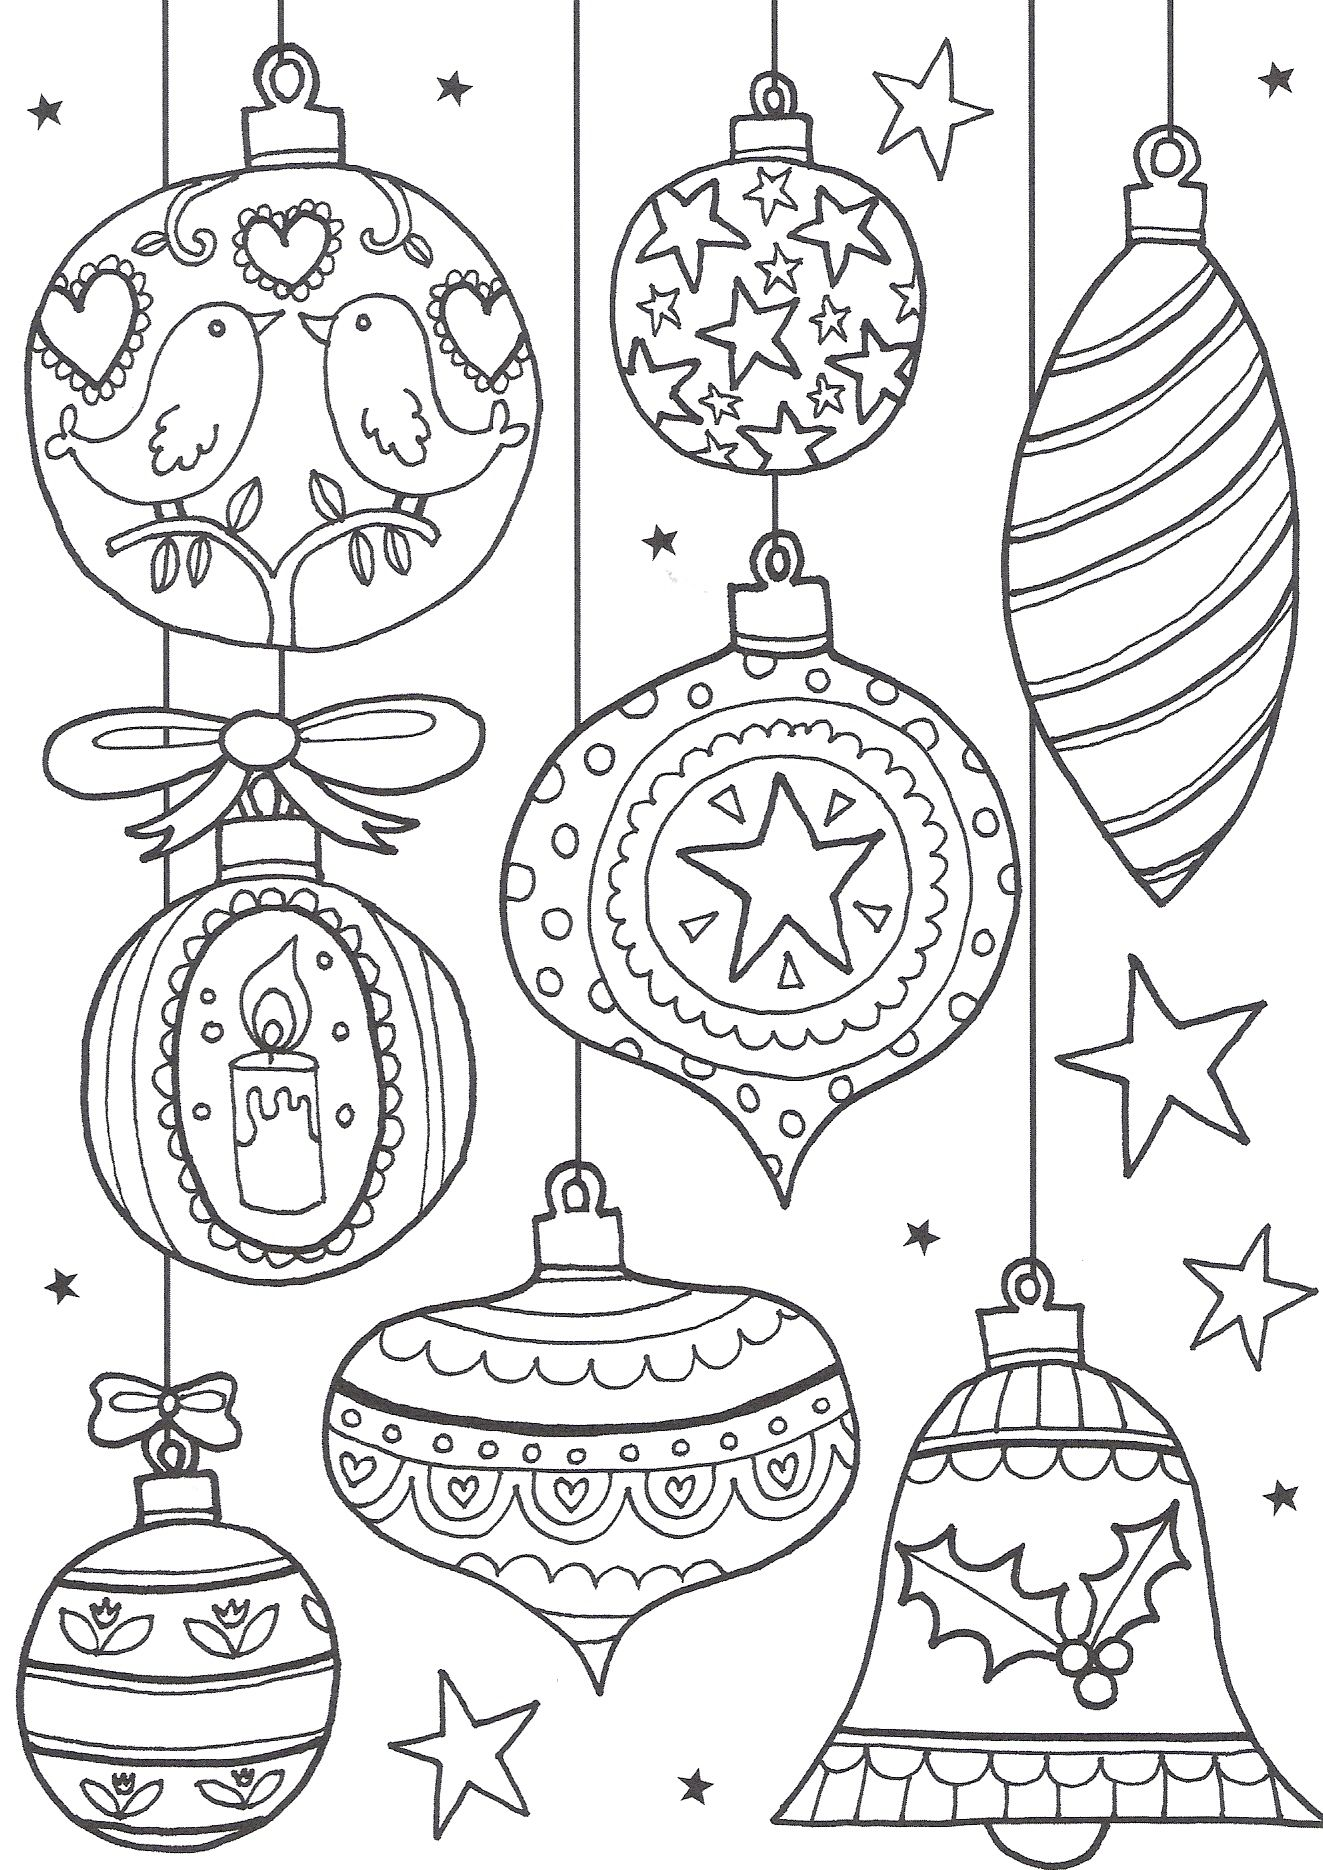 Free Disney Christmas Colouring Pages With For Adults The Ultimate Roundup